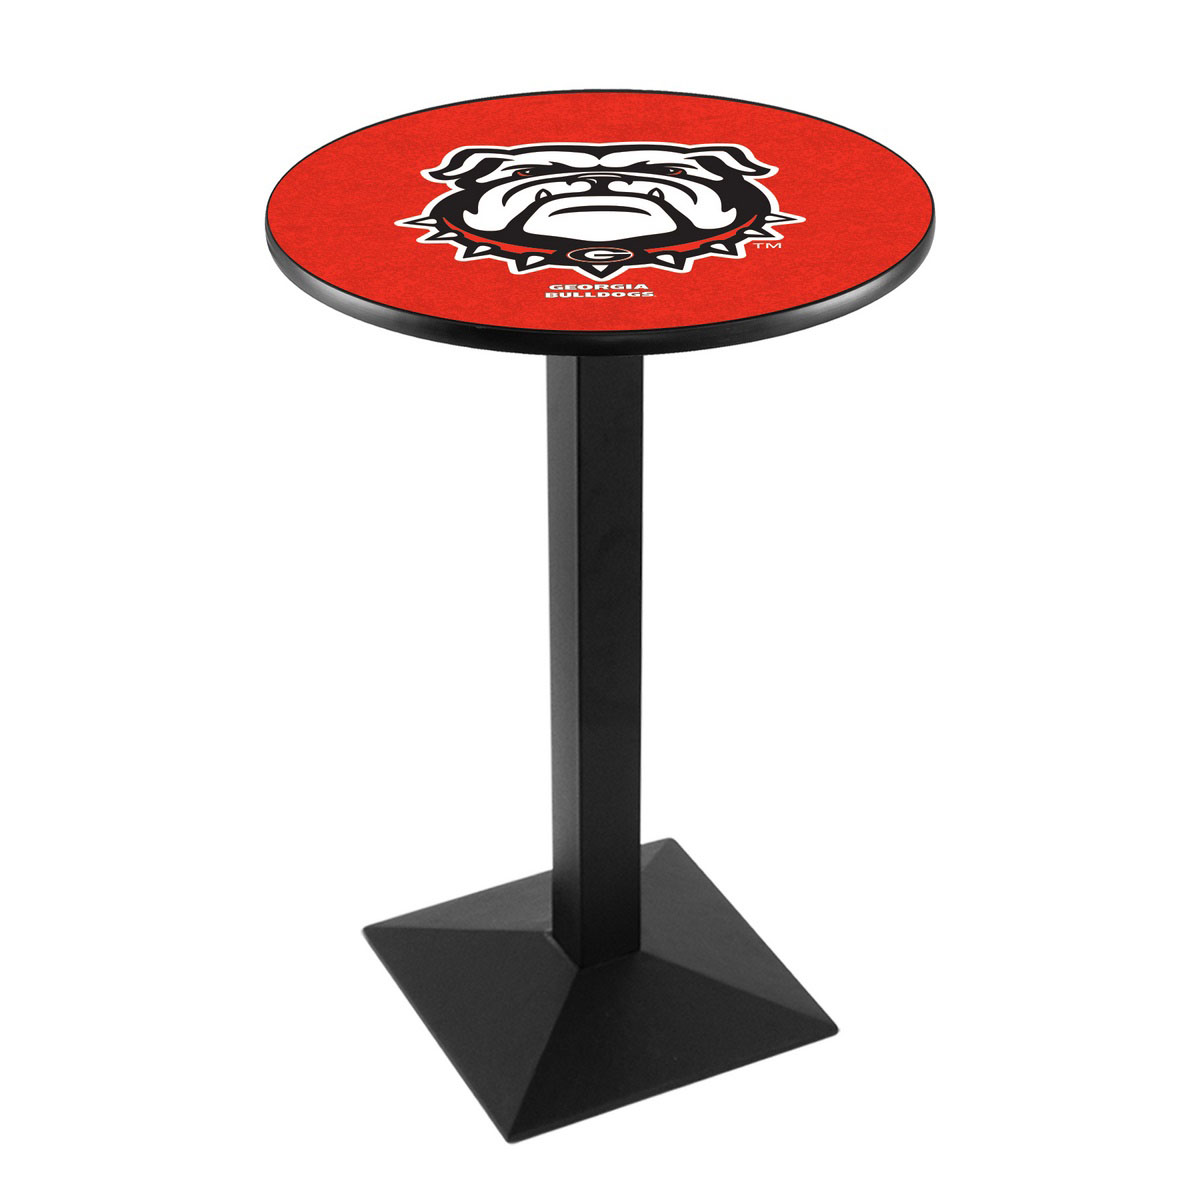 Design University Georgia Bulldog Logo Pub Bar Table Square Stand Product Photo